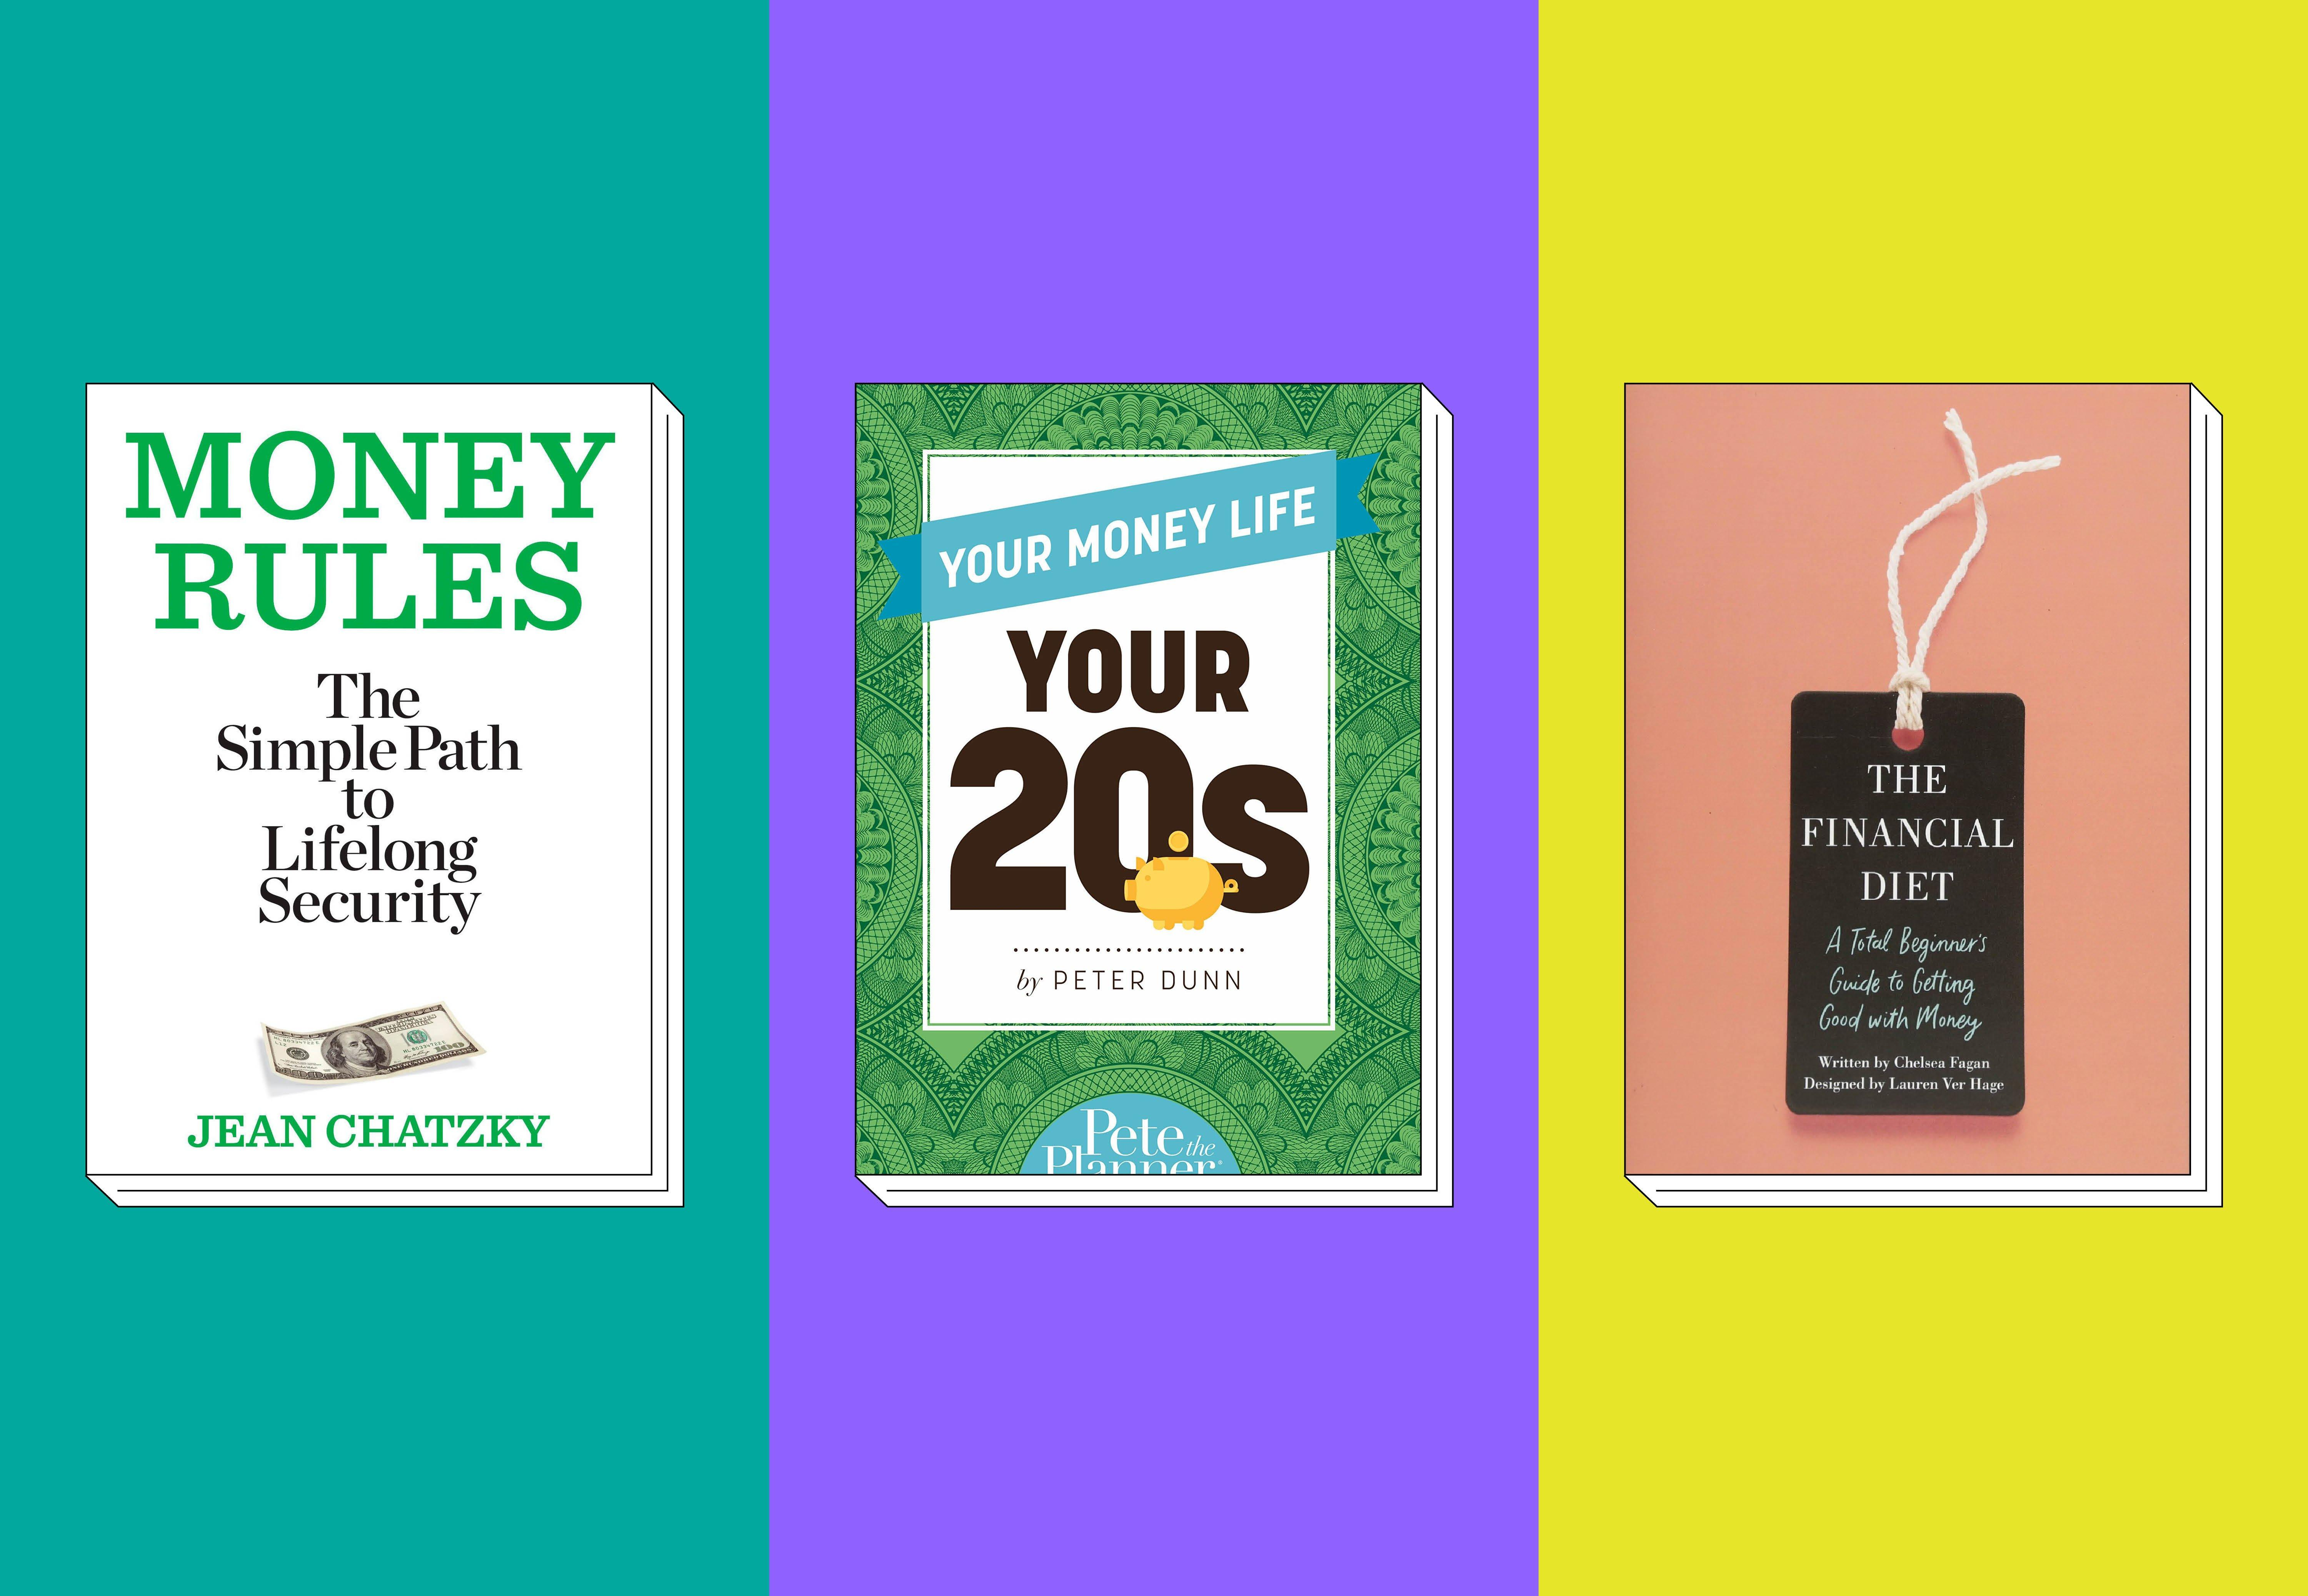 5 Books to Help College Students Avoid Going Broke, According to Personal Finance Experts